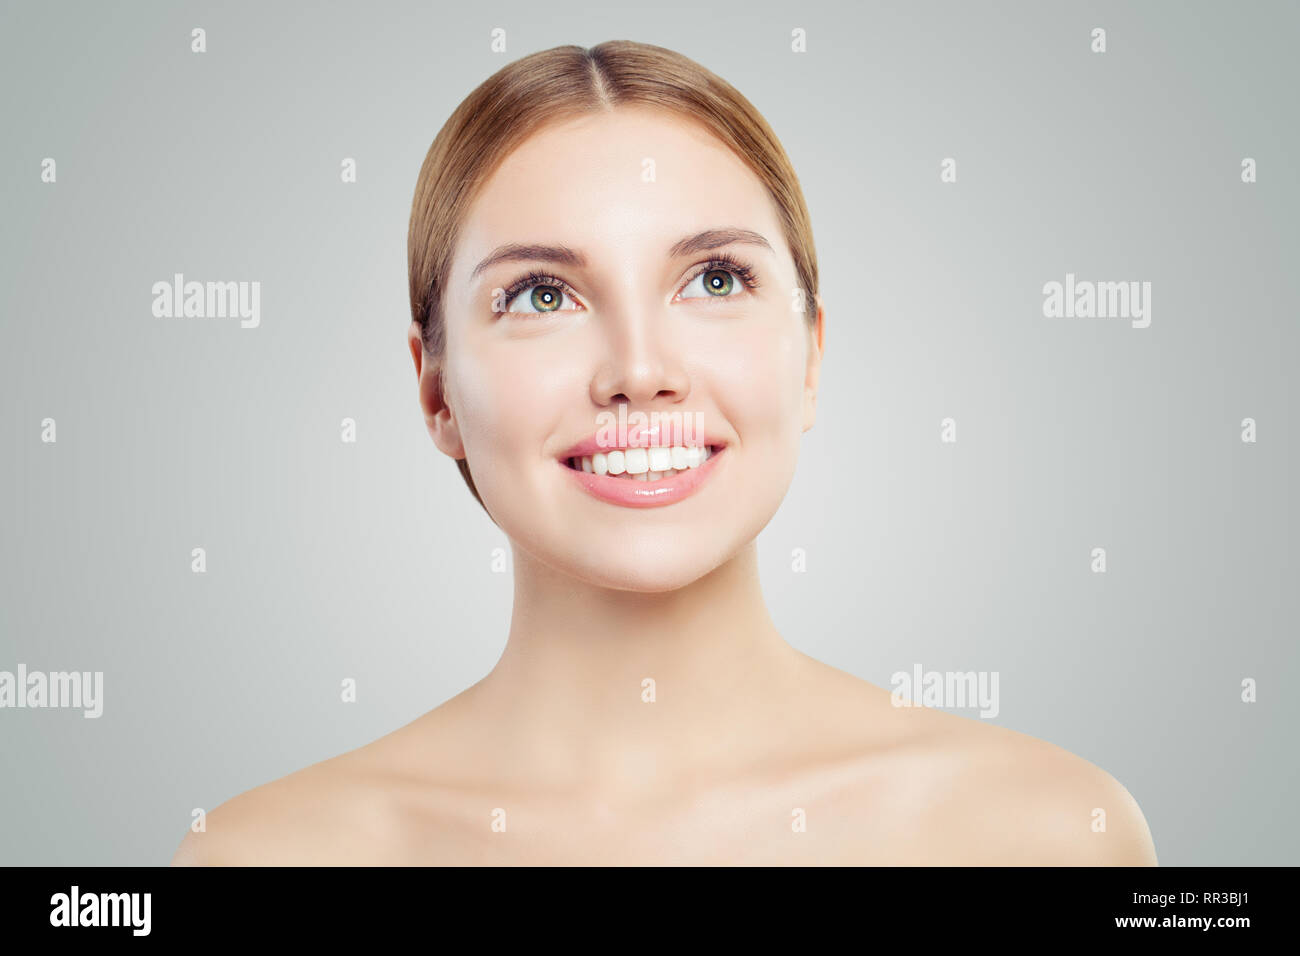 Young Perfect Woman Looking Up Closeup Portrait On White Background